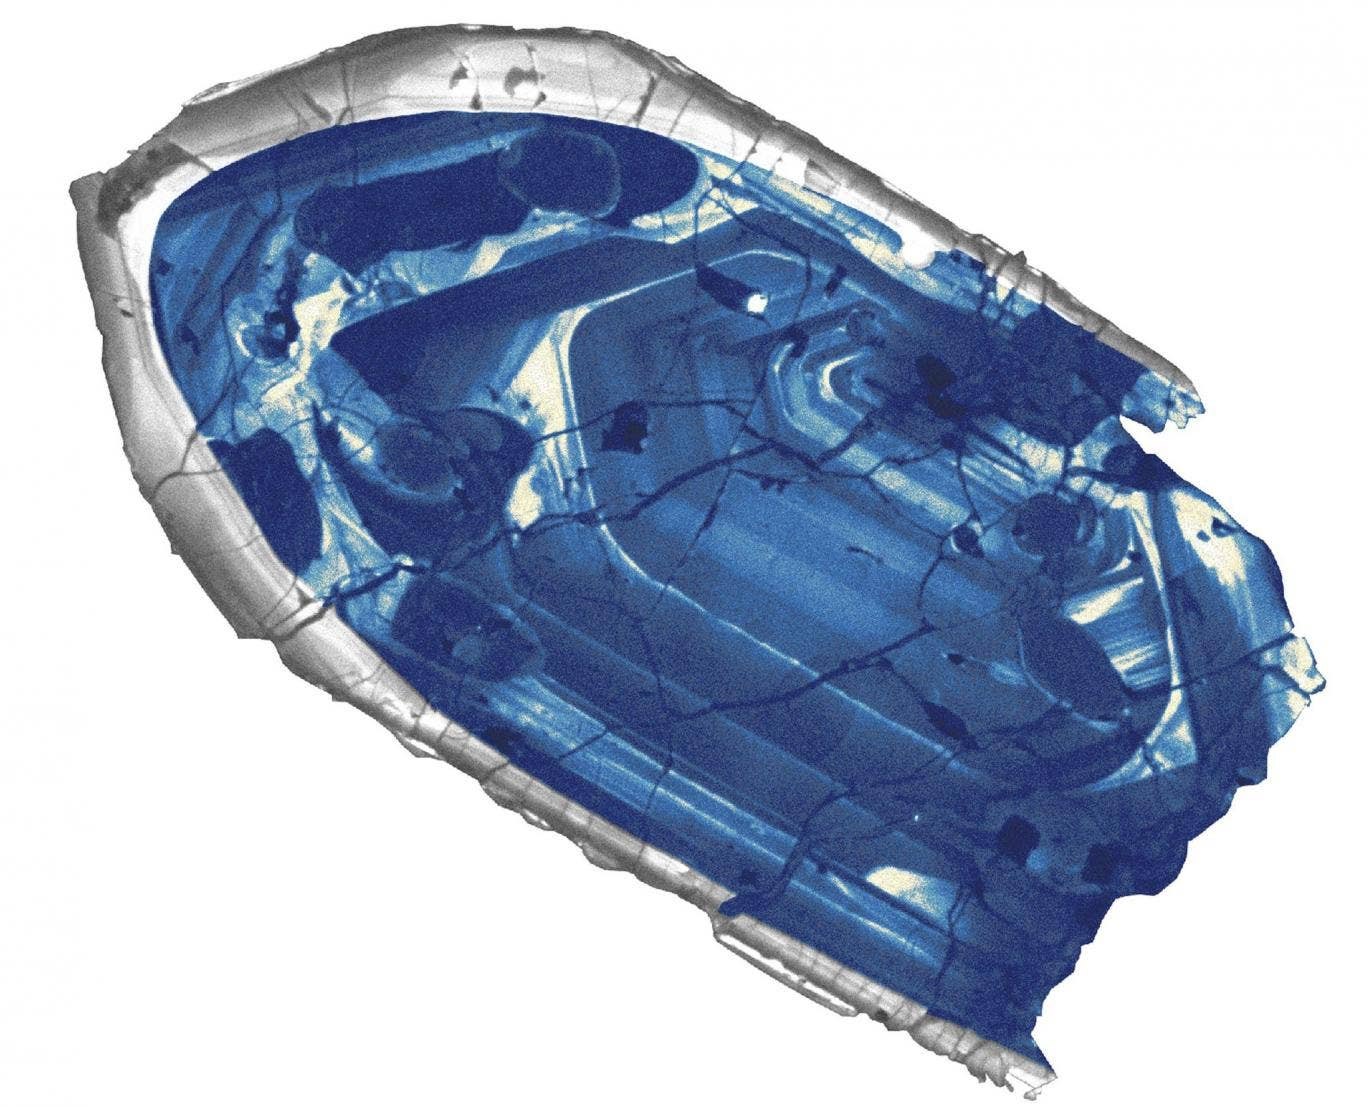 This zircon crystal from a sheep ranch in Australia has been found to be 4.4 billion years old - the oldest piece of the Earth's crust ever discovered